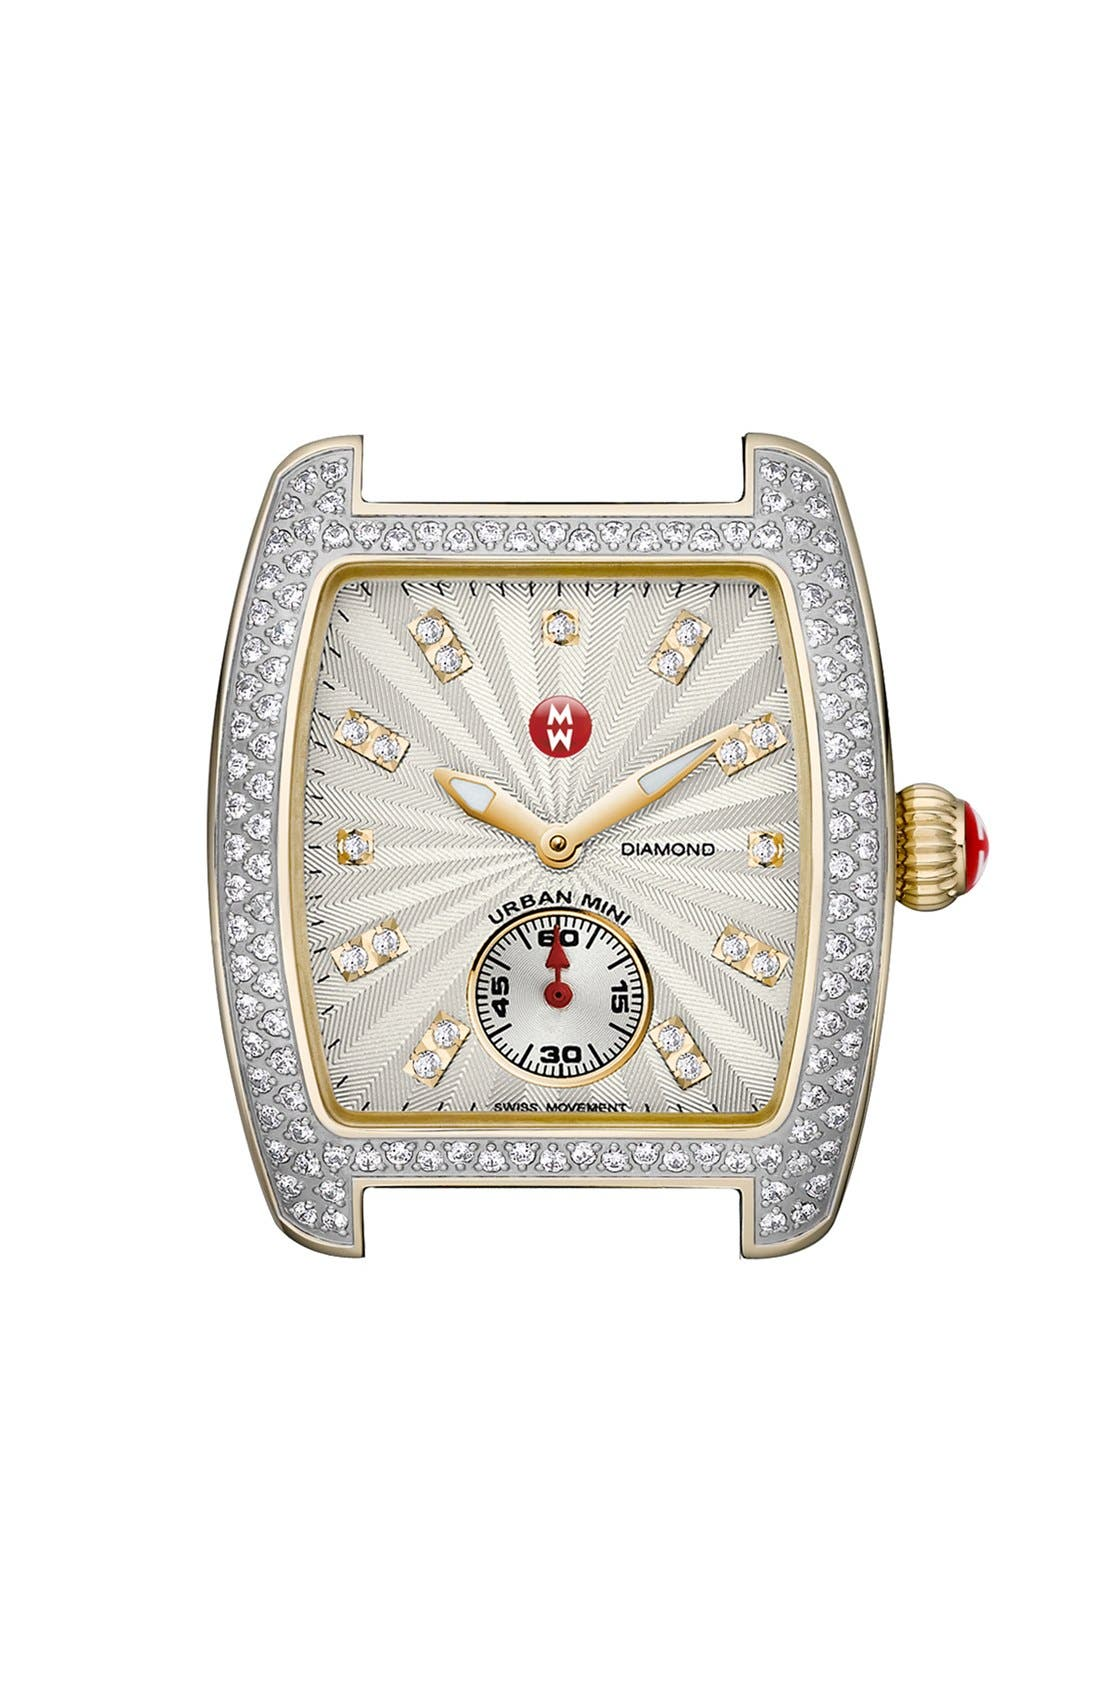 Main Image - MICHELE 'Urban Mini Diamond' Two-Tone Watch Case, 29mm x 30mm